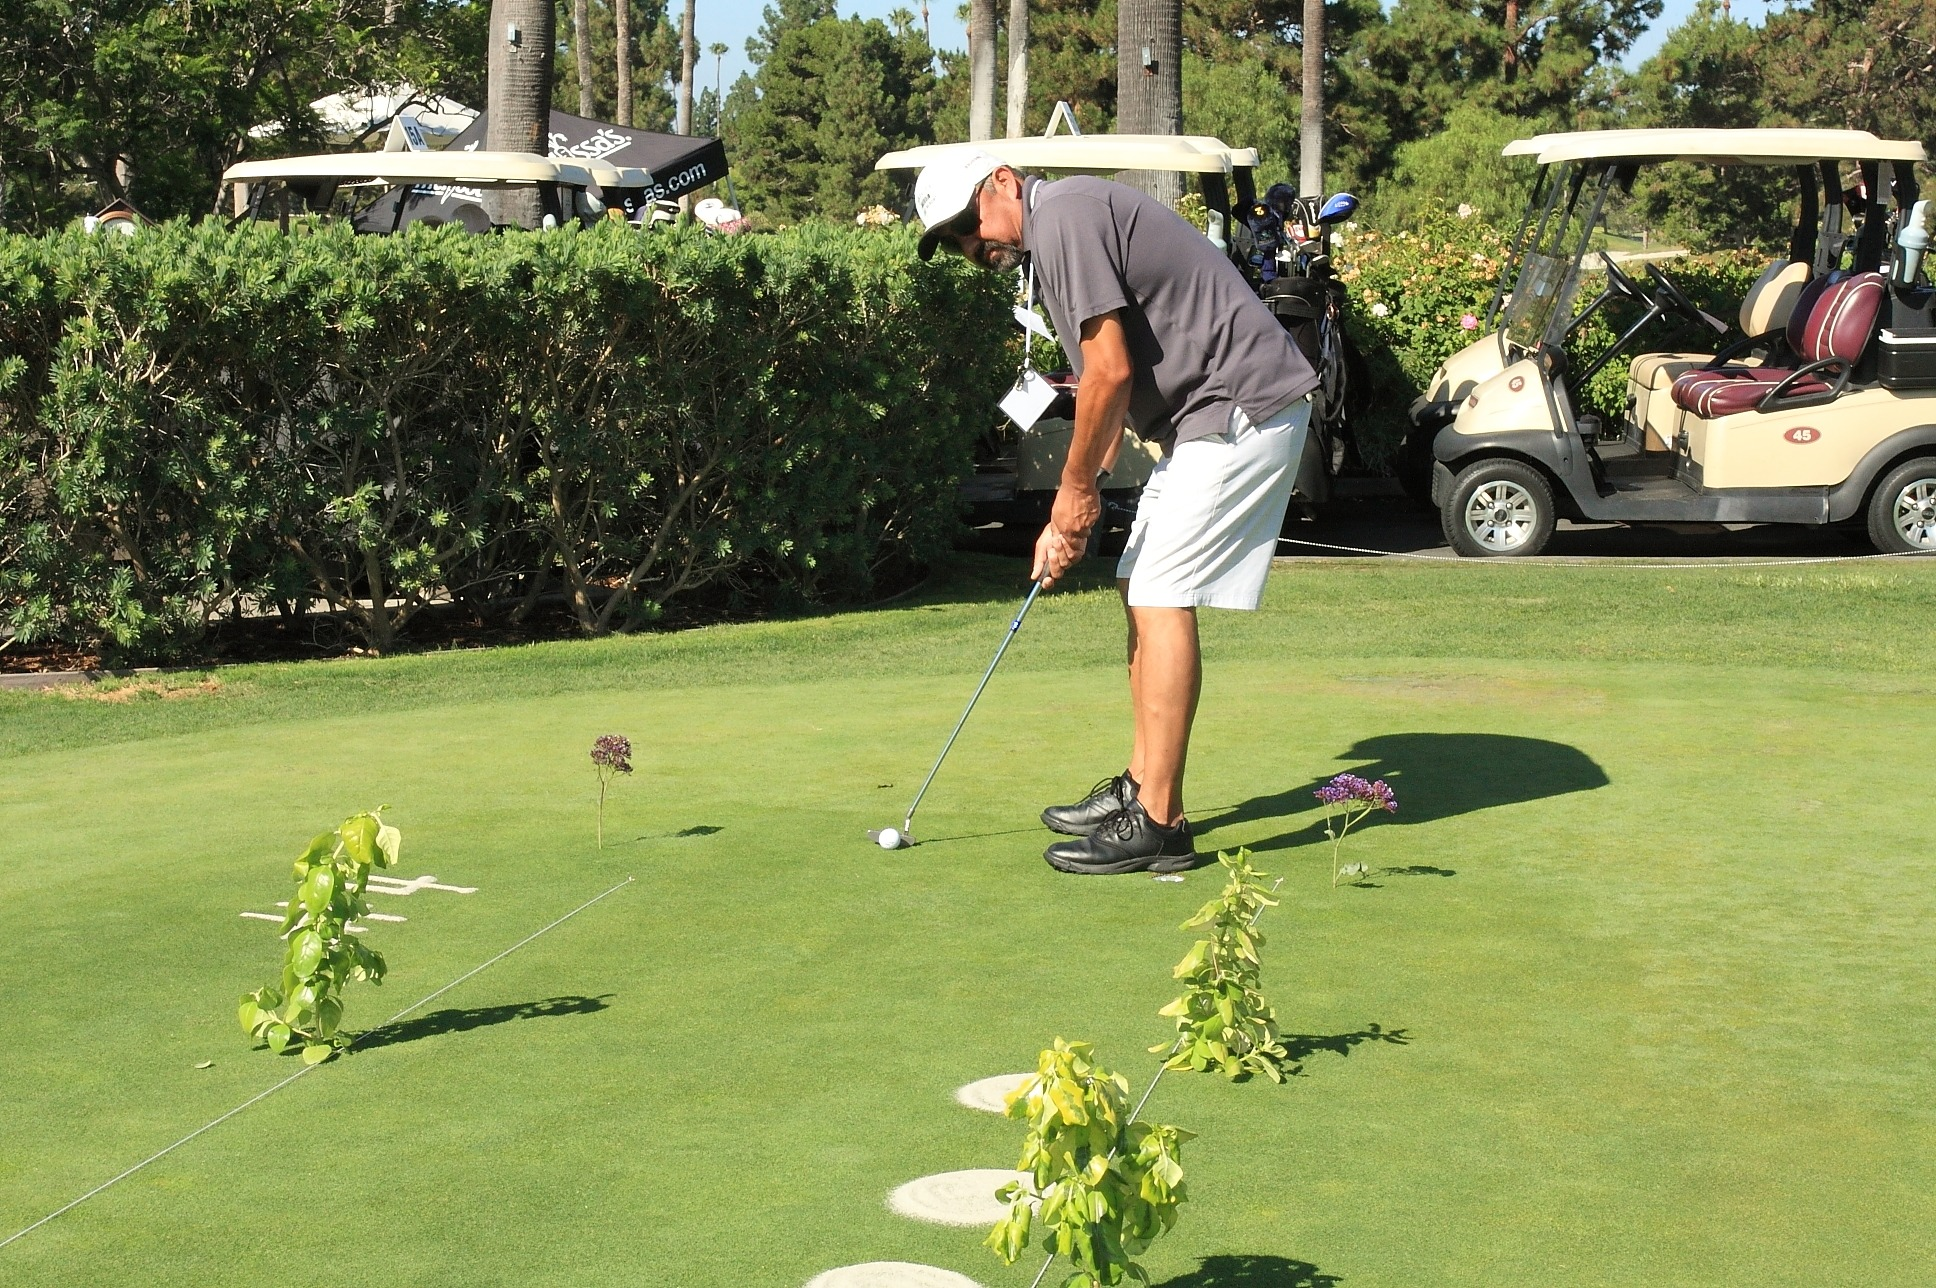 Jeff Roa from Albertsons/Safeway/Vons taking his shot at winning the pre-tournament putting contest.